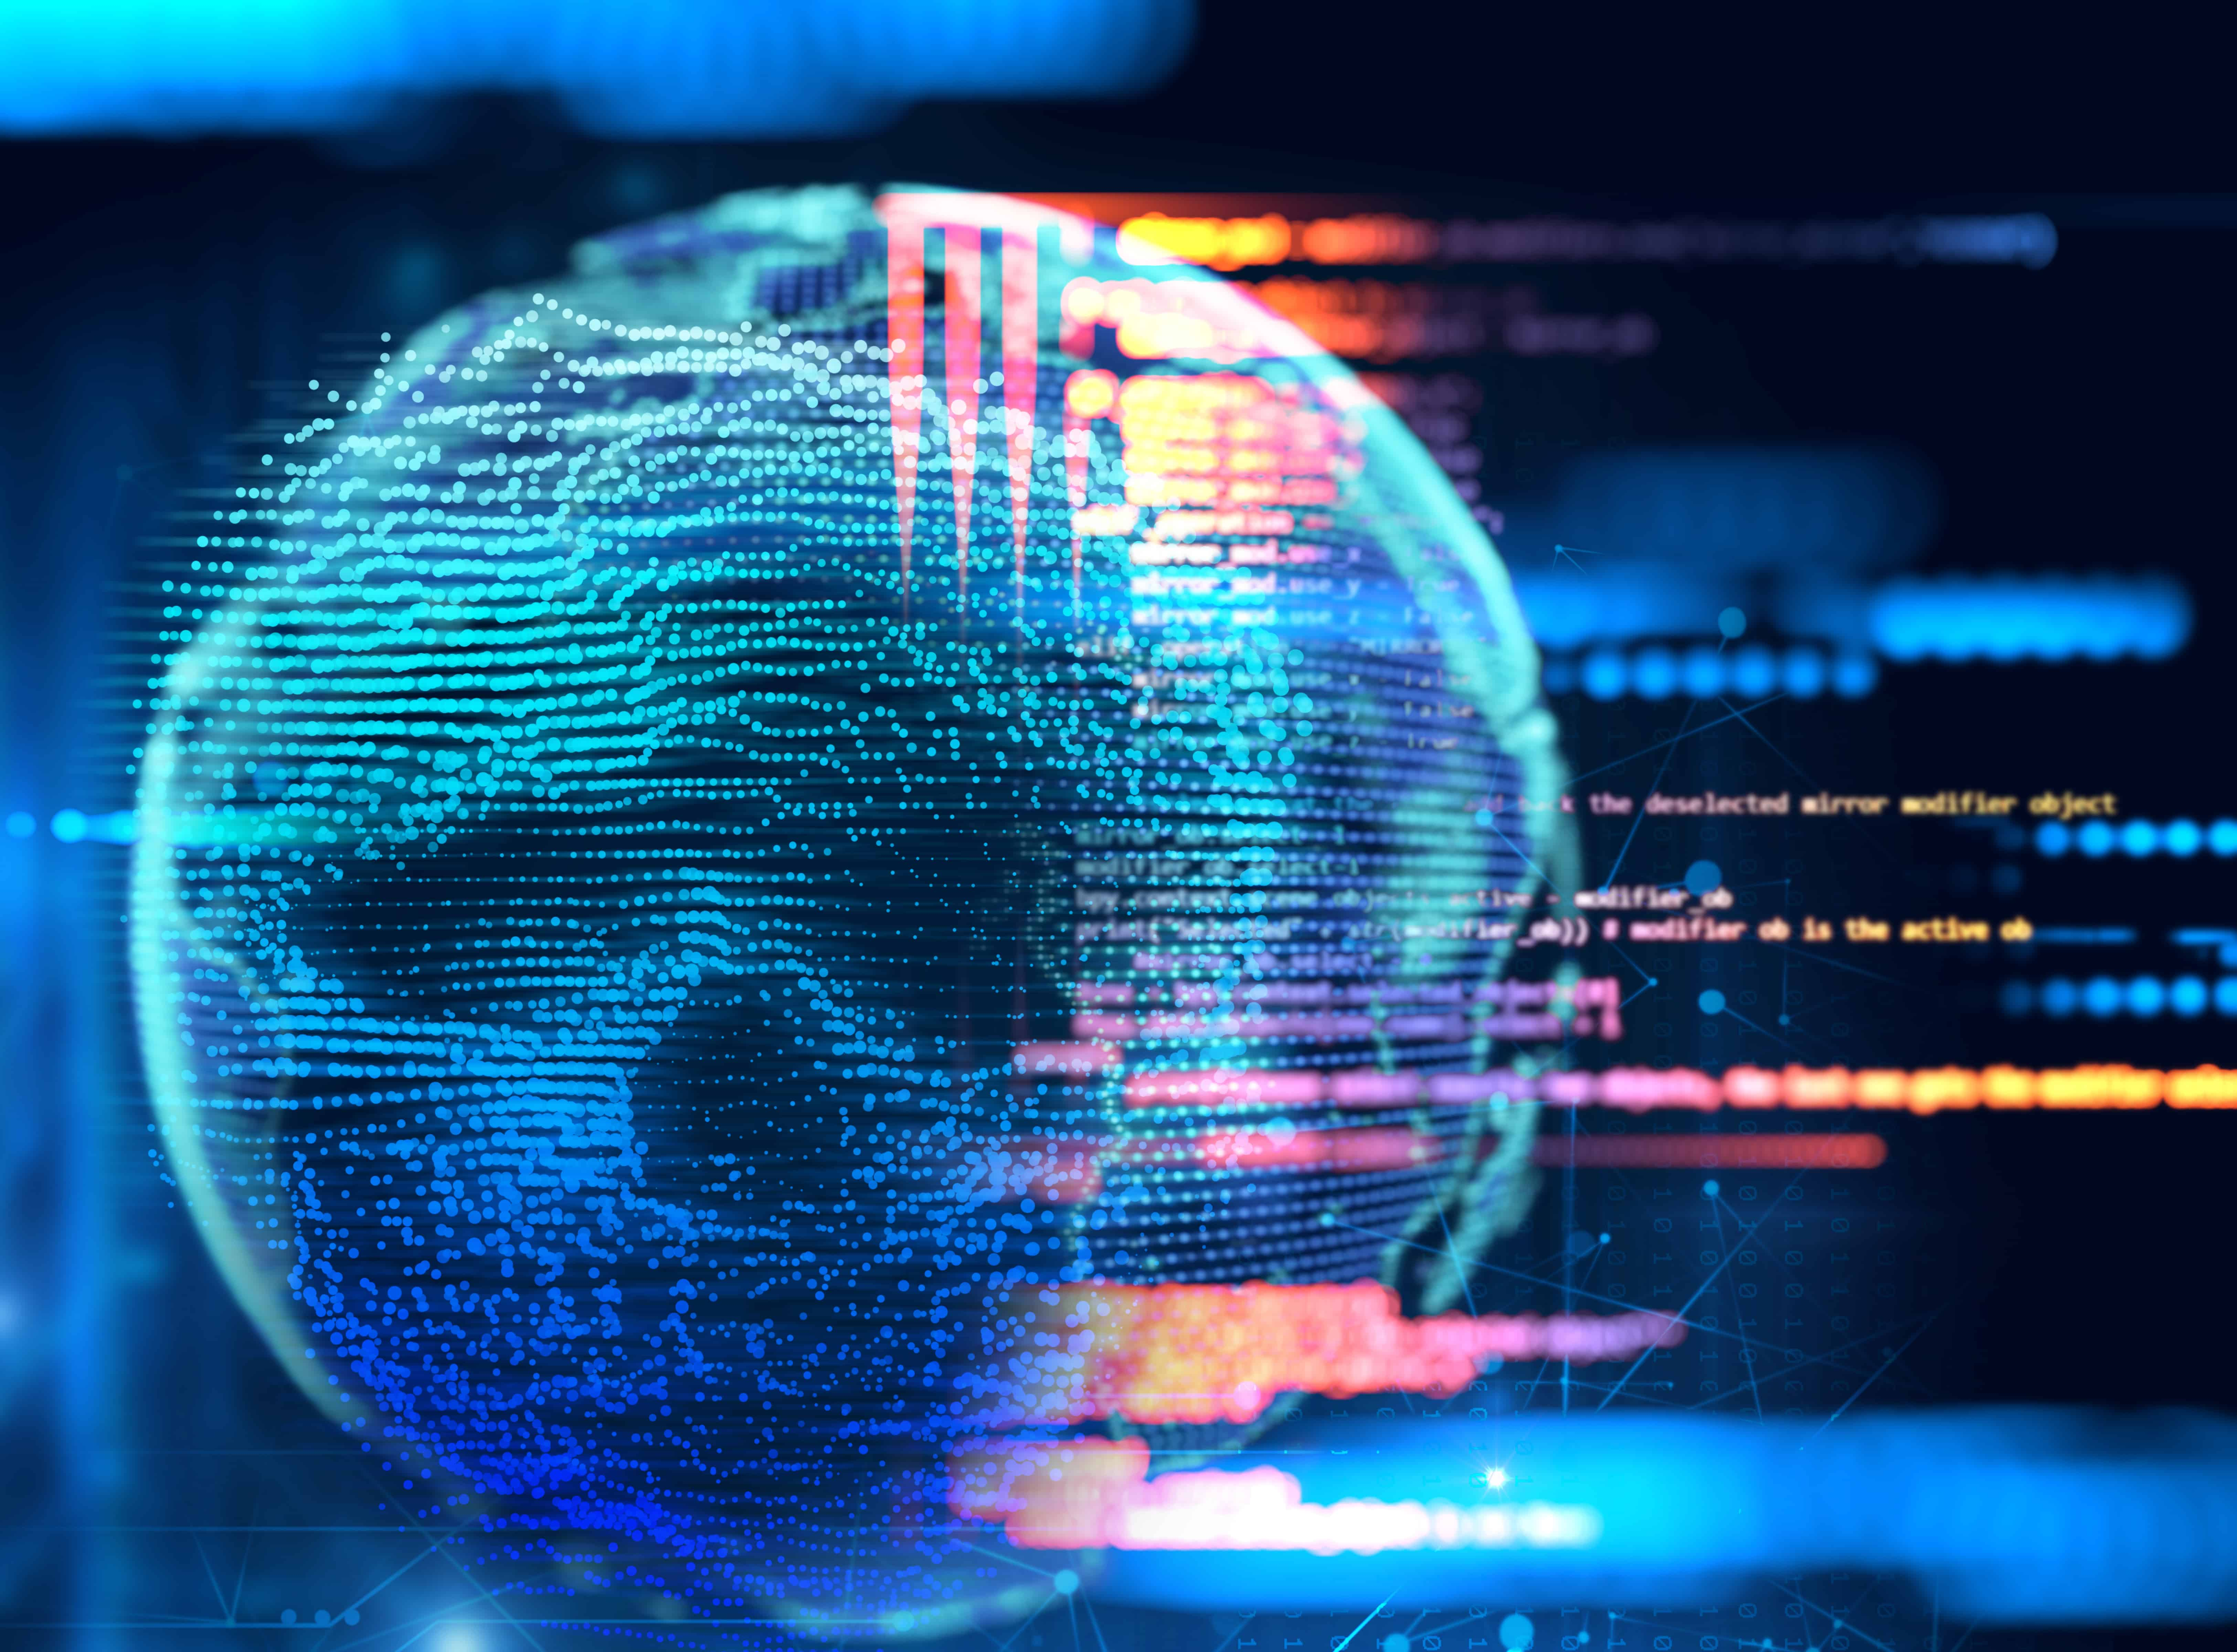 Ransomware-as-a-service lowers the bar for entering the entering the cyber extortion game